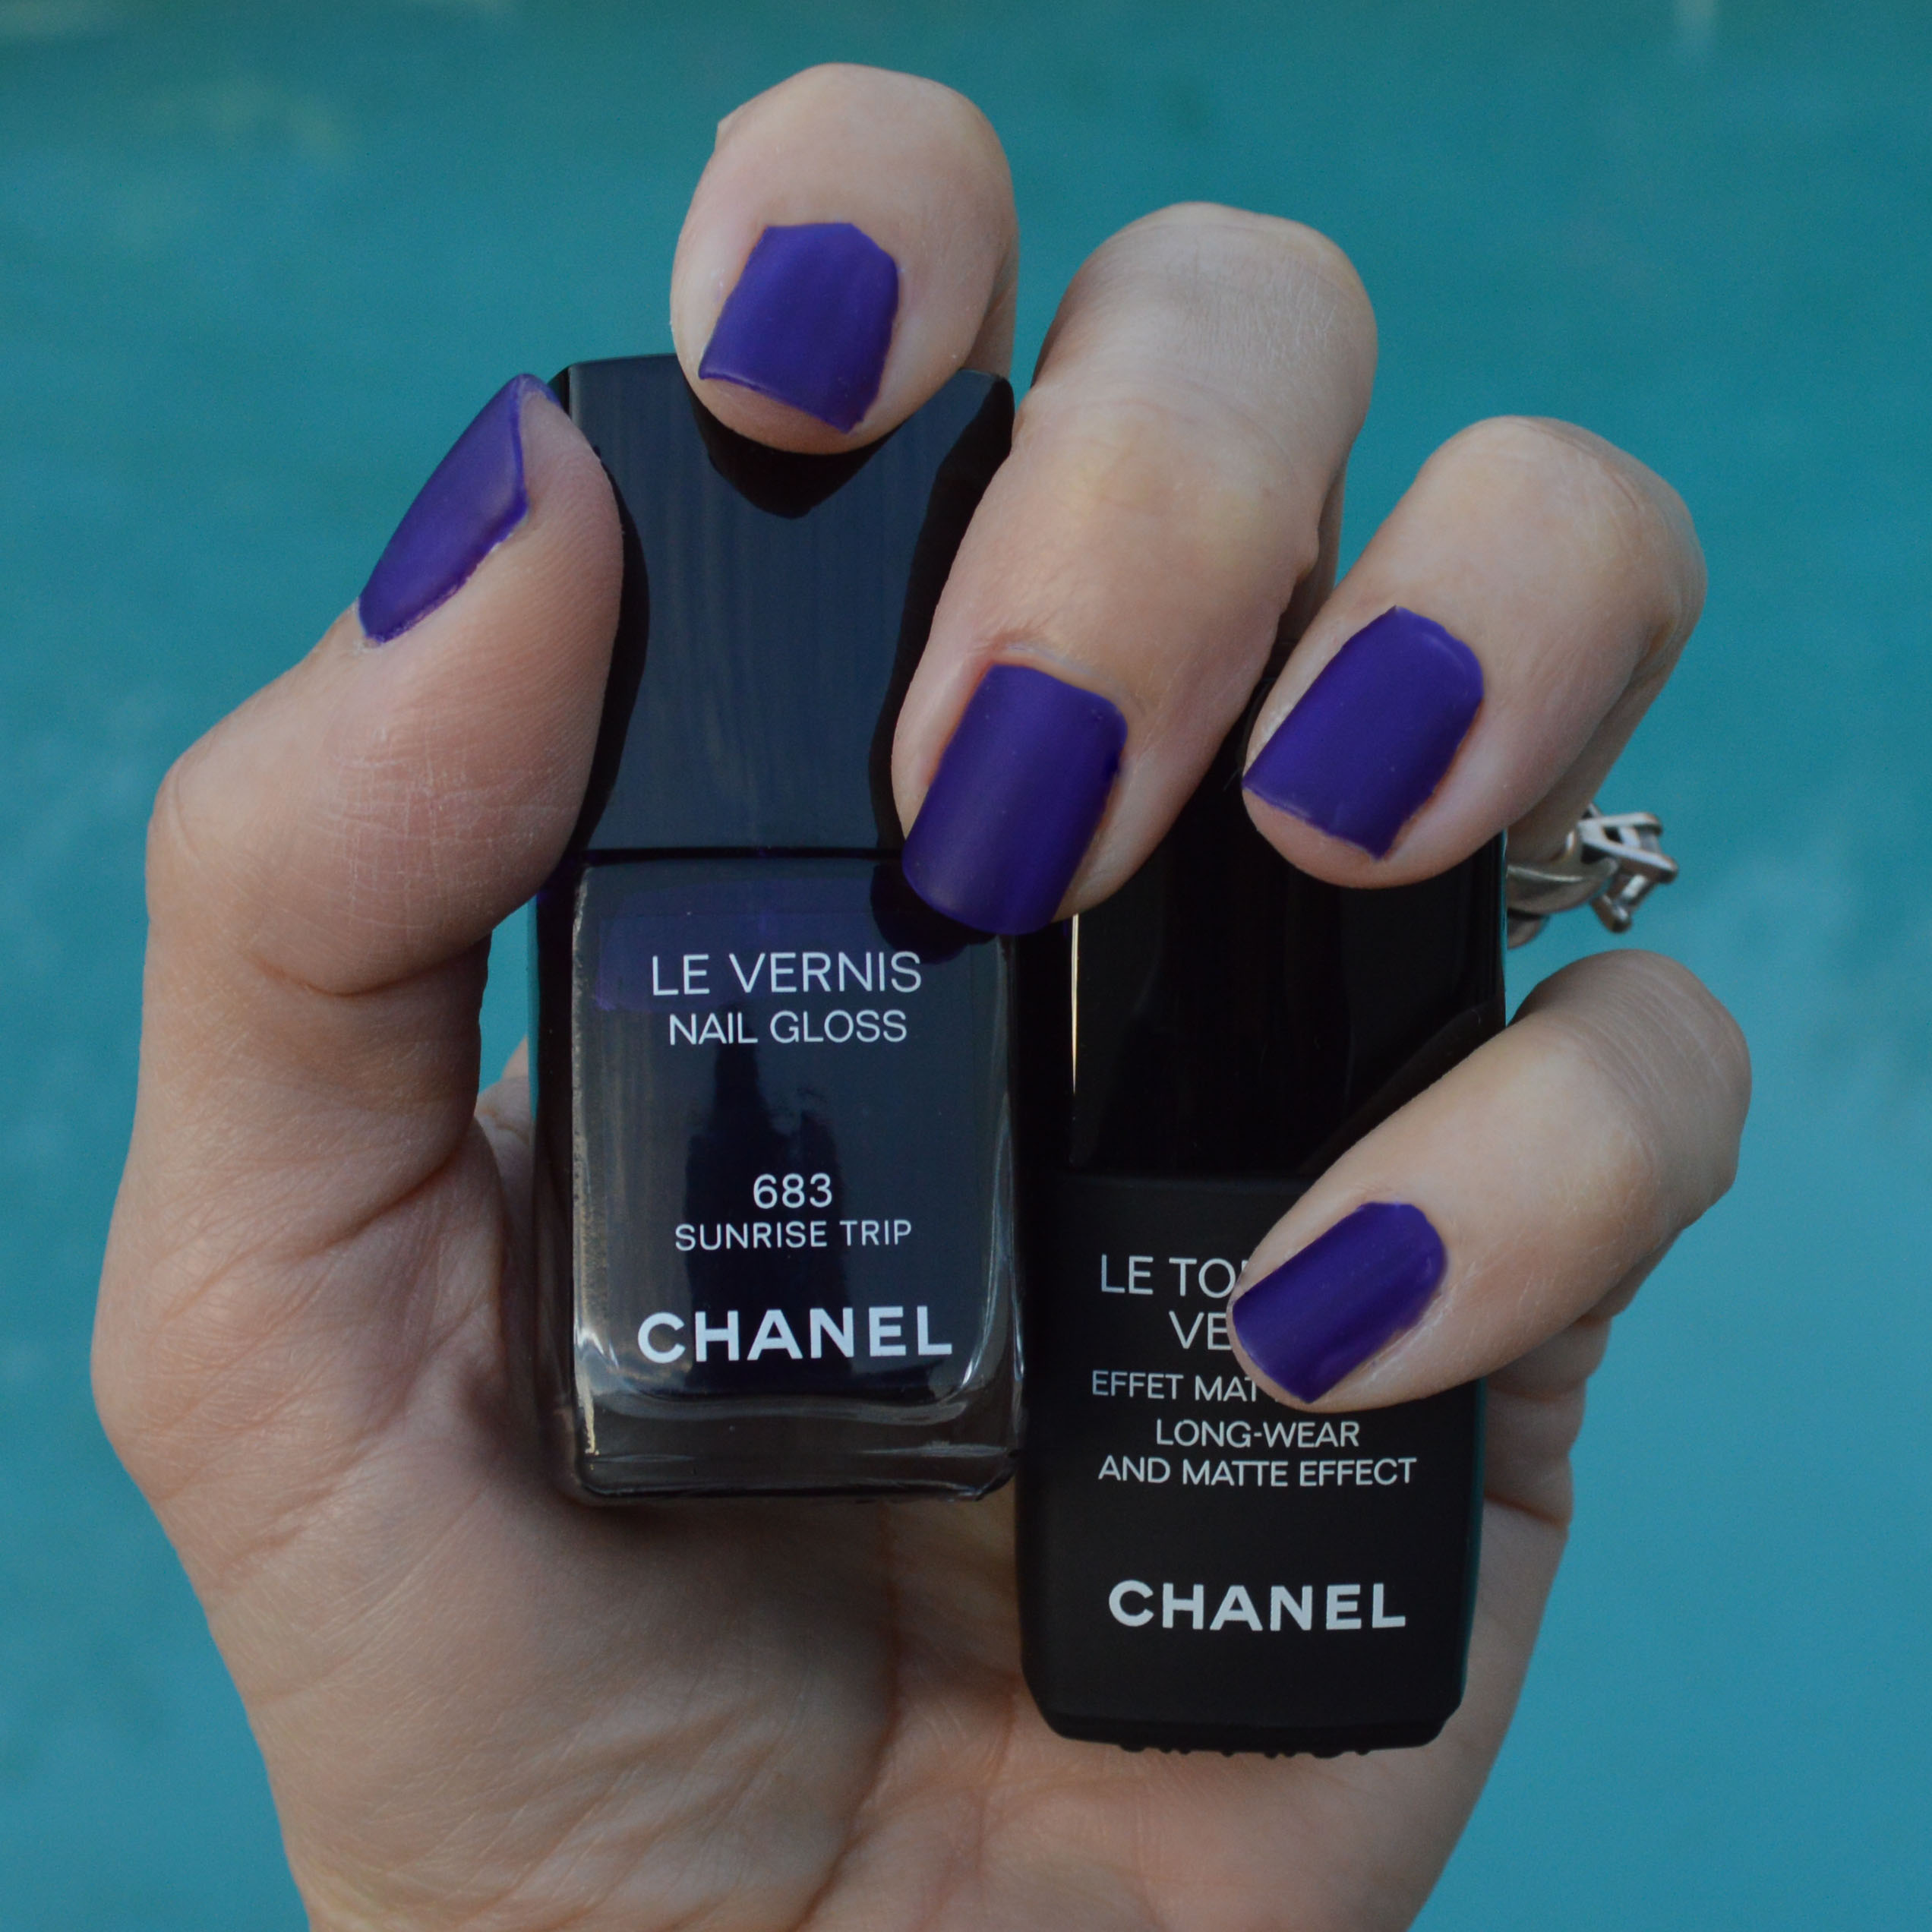 chanel nail polish blog | Page 8 of 32 | Bay Area Fashionista